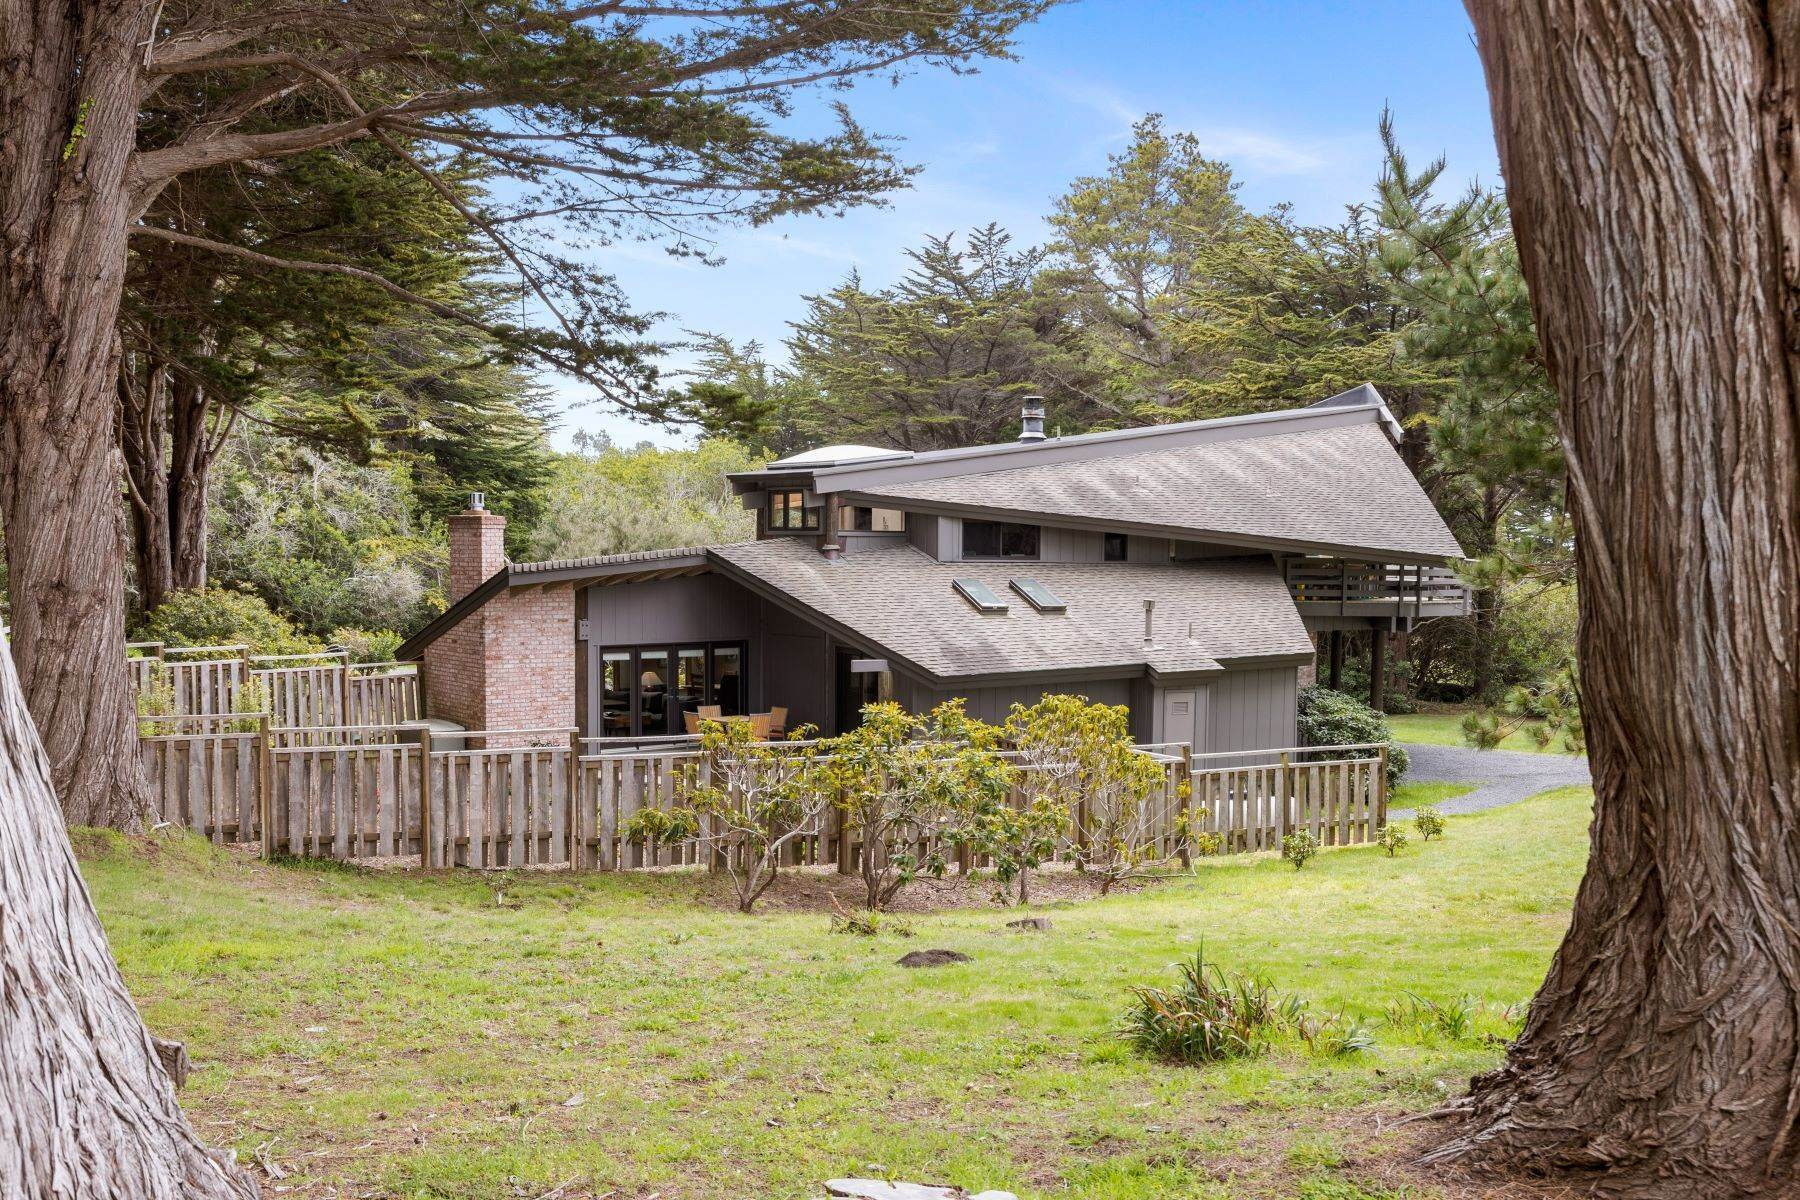 Single Family Homes for Sale at Starboard Home 14181 Hilma Circle Mendocino, California 95460 United States